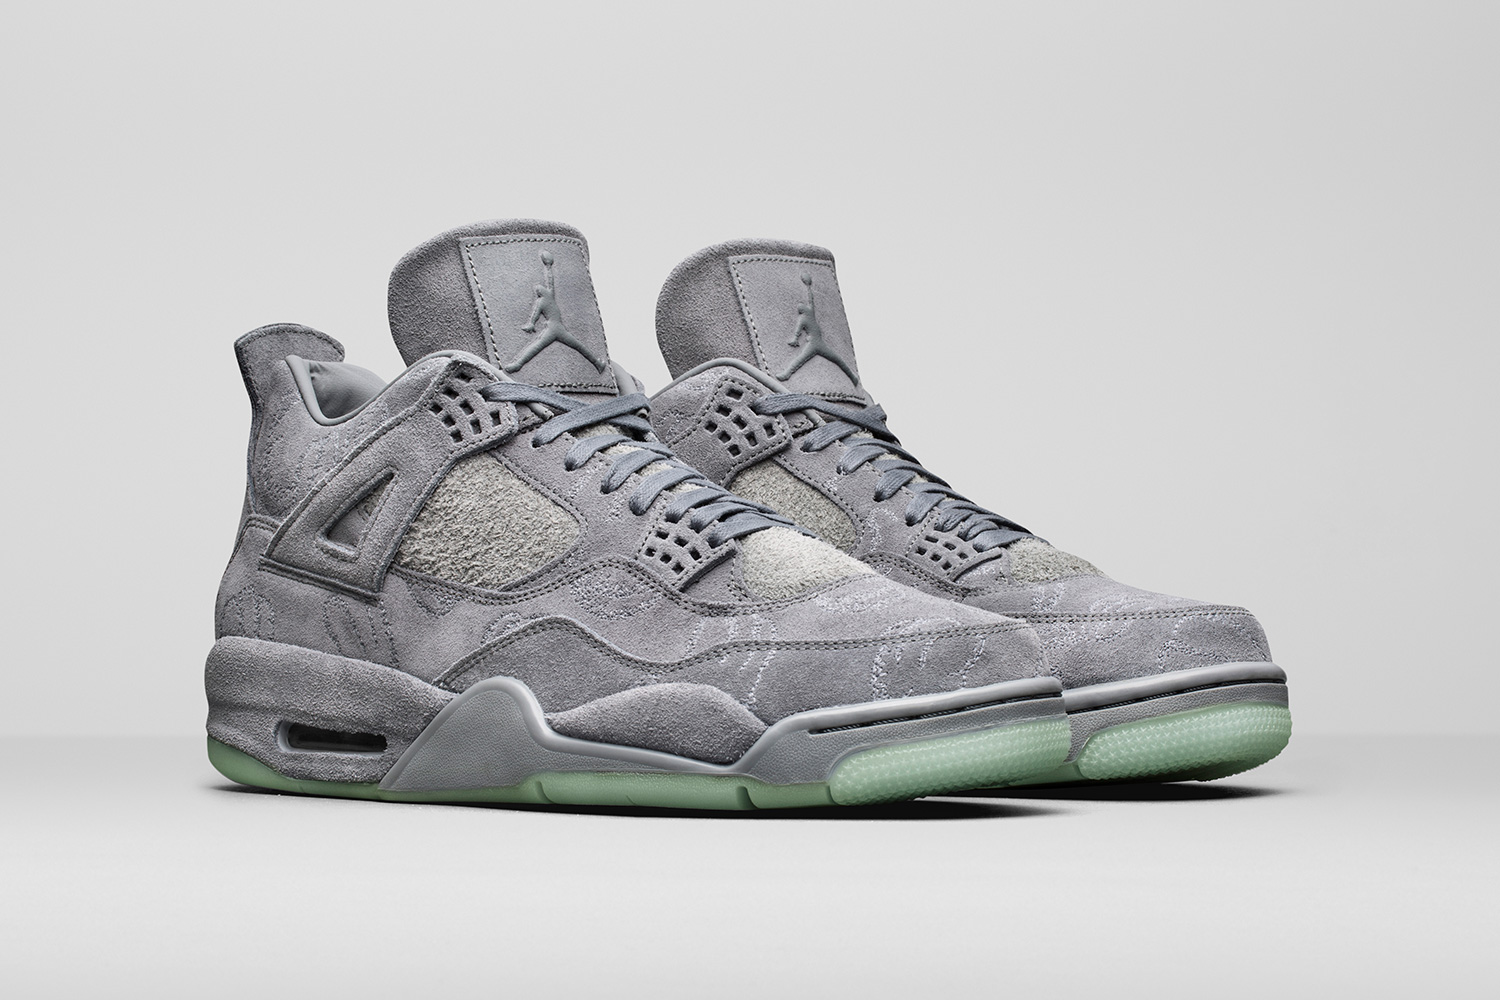 kaws-air-jordan-4-official-images-01